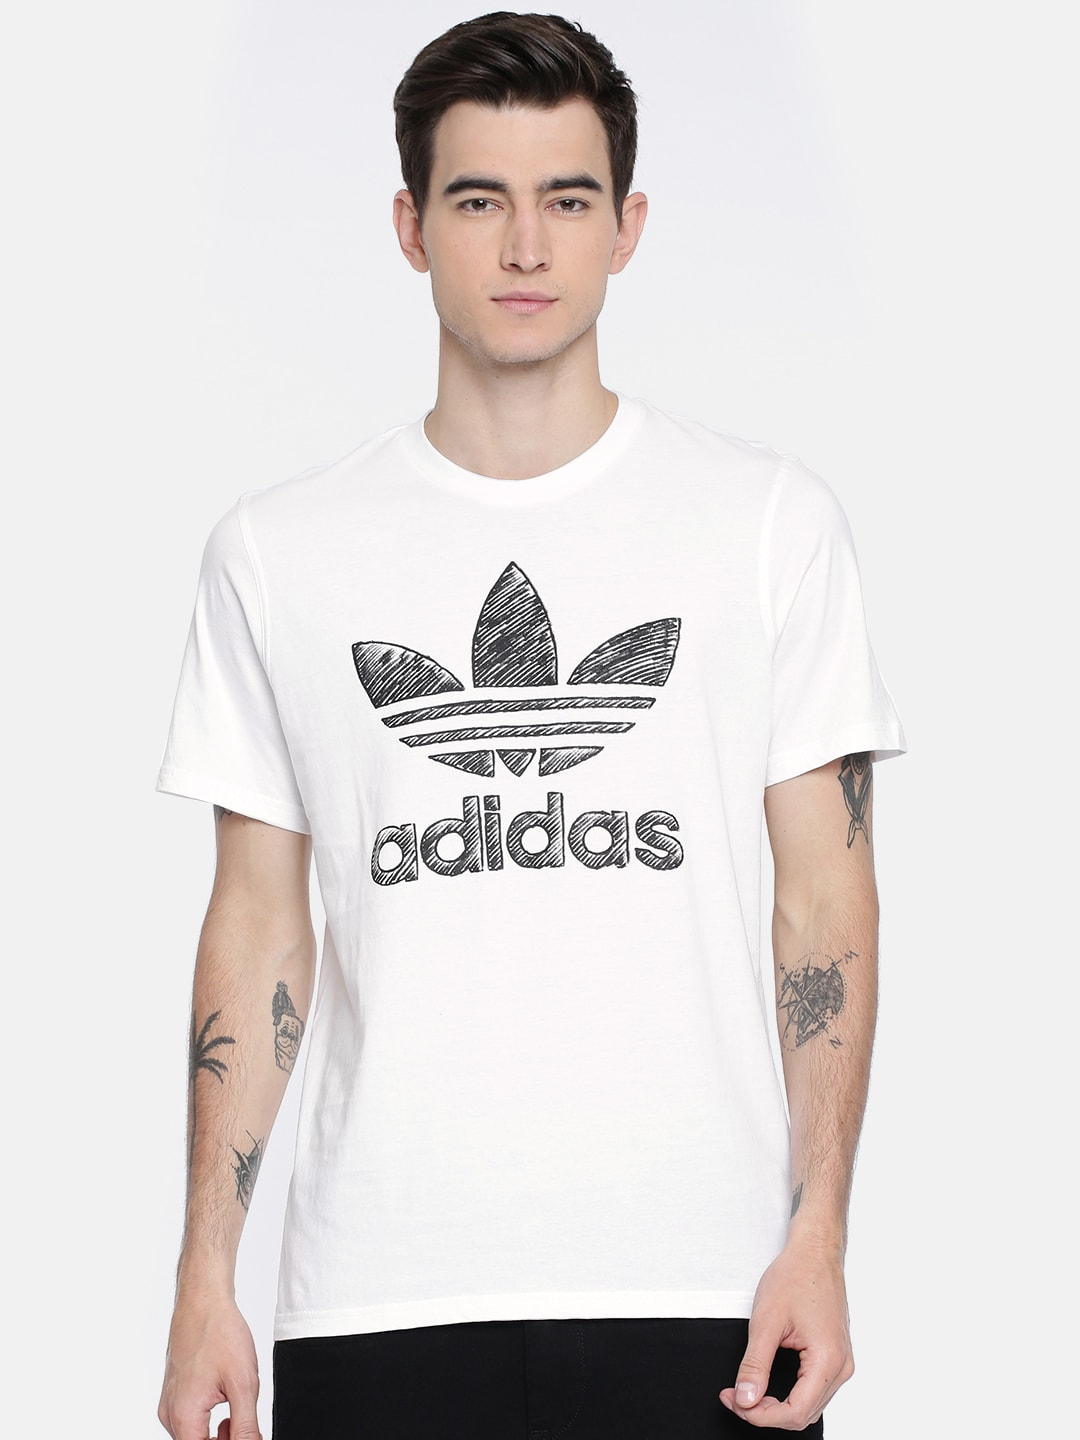 Adidas T-Shirts - Buy Adidas Tshirts Online in India  7e101ab6f42b3